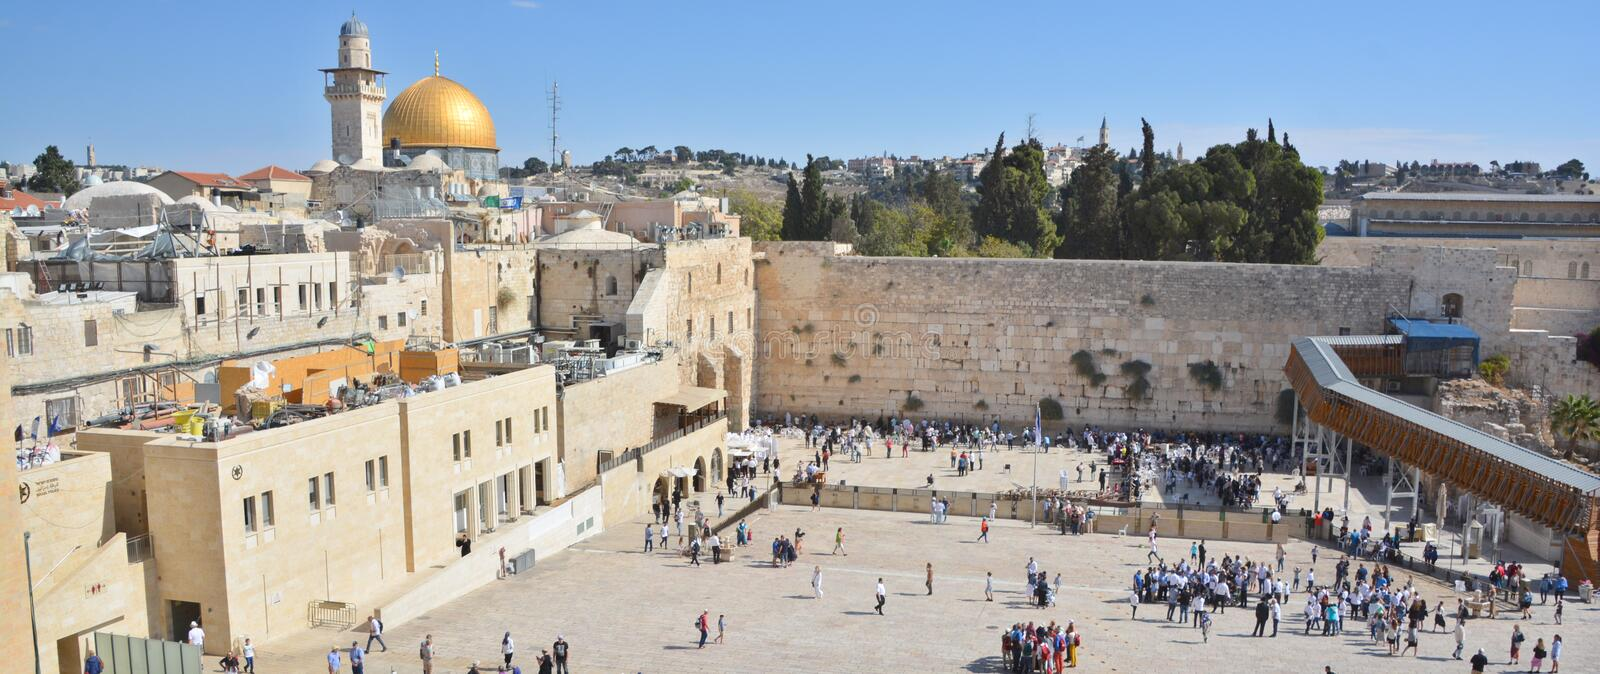 People pray. JERUSALEM ISRAEL 26 10 16: People pray a the Western Wall, Wailing Wall or Kotel the Place of Weeping is an ancient limestone wall in the Old City stock photo